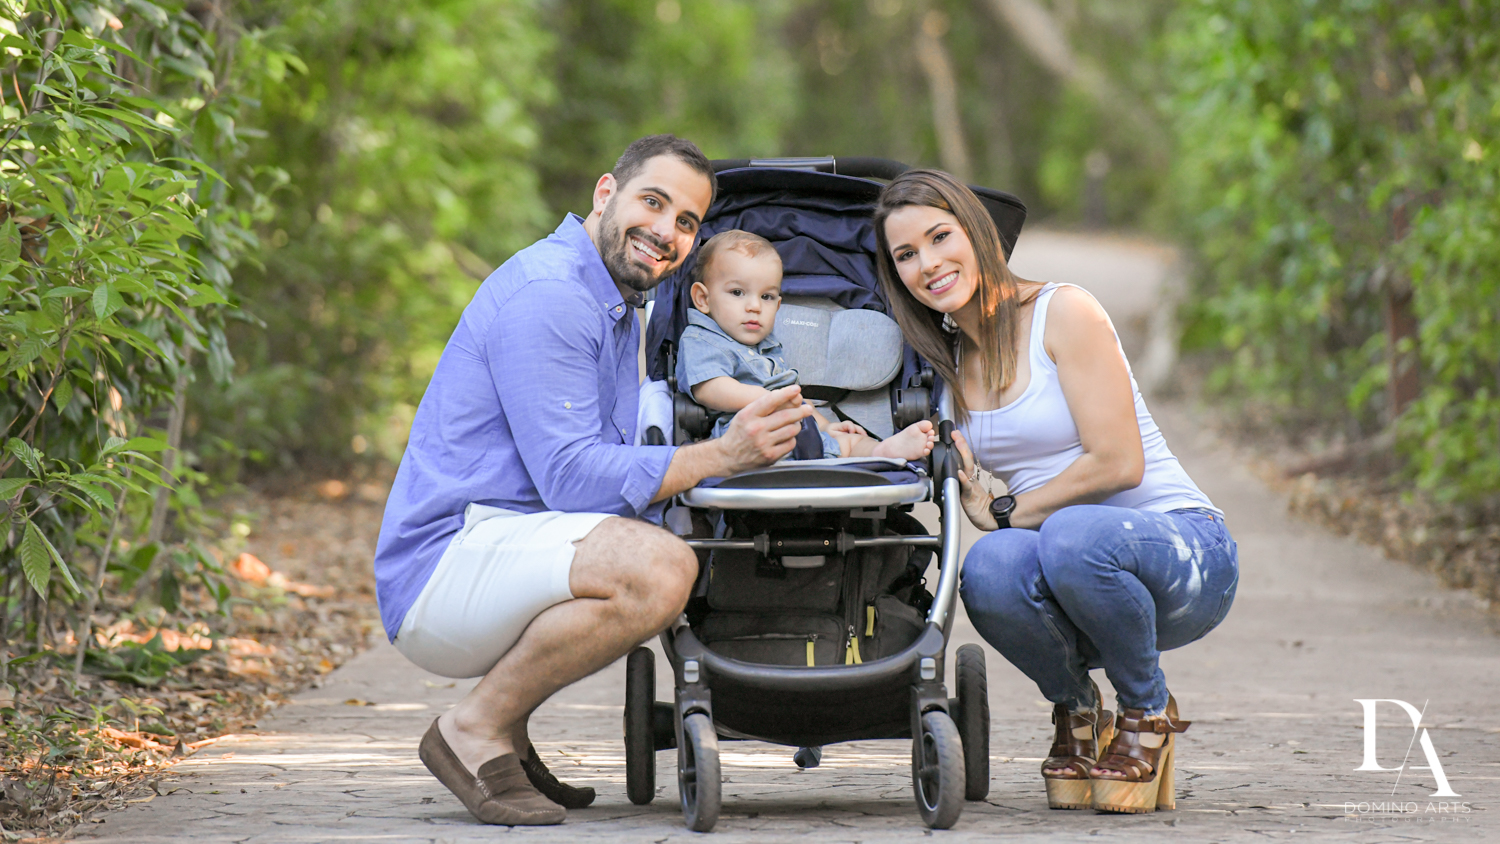 park pictures at Urban baby Photo Session in Coral Gables by Domino Arts Photography